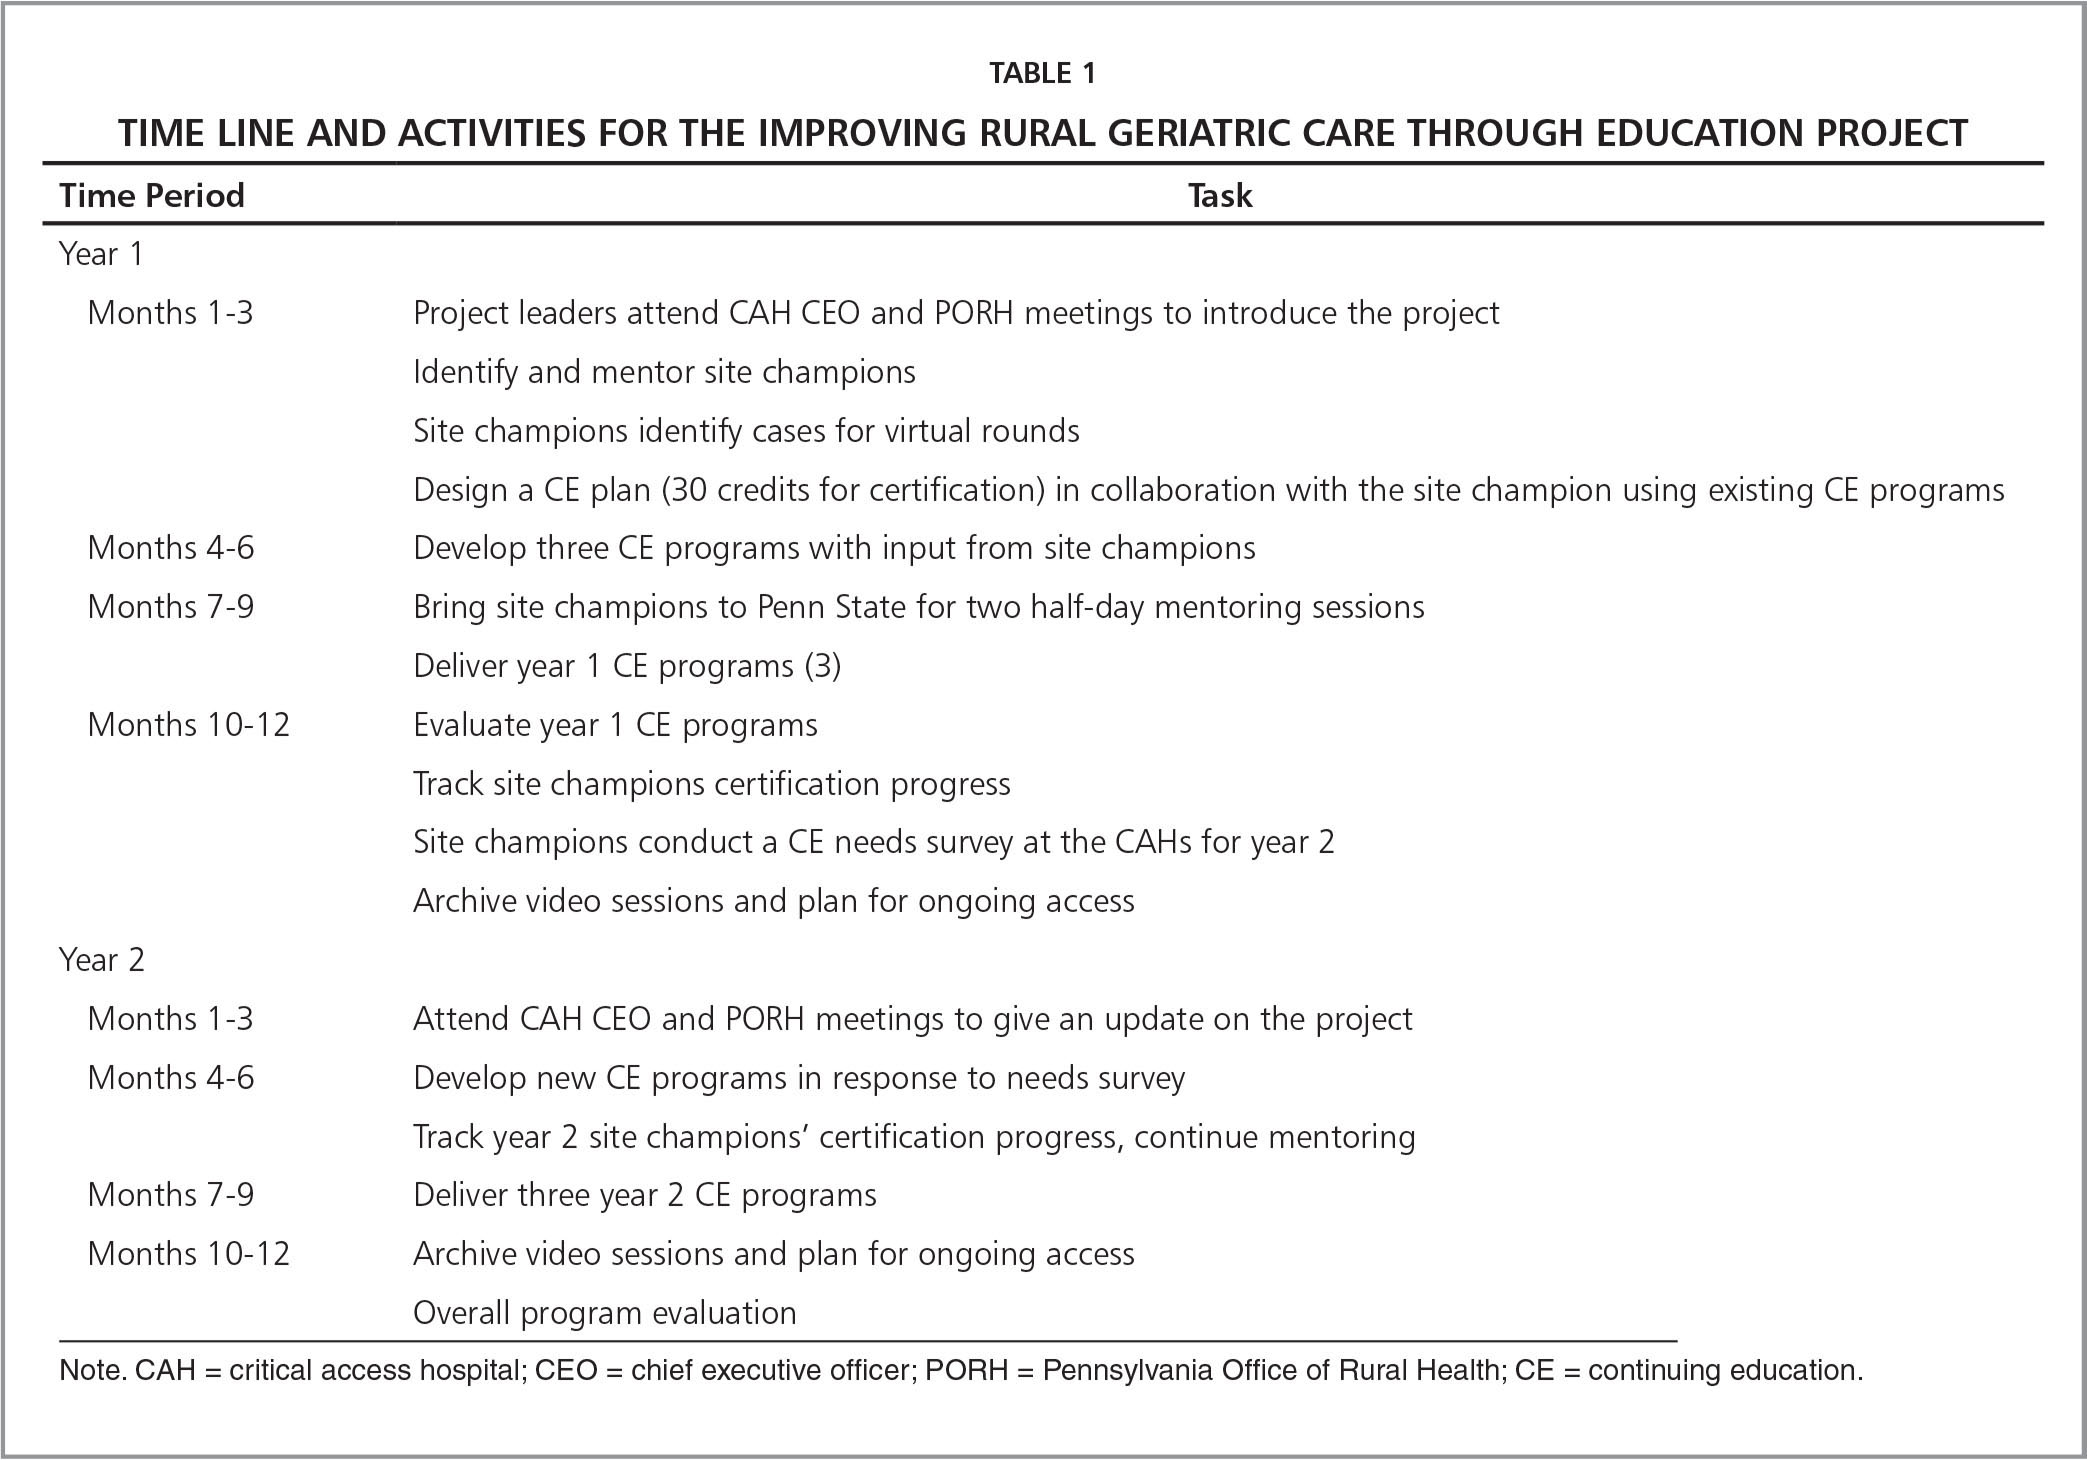 Time Line and Activities for the Improving Rural Geriatric Care Through Education Project